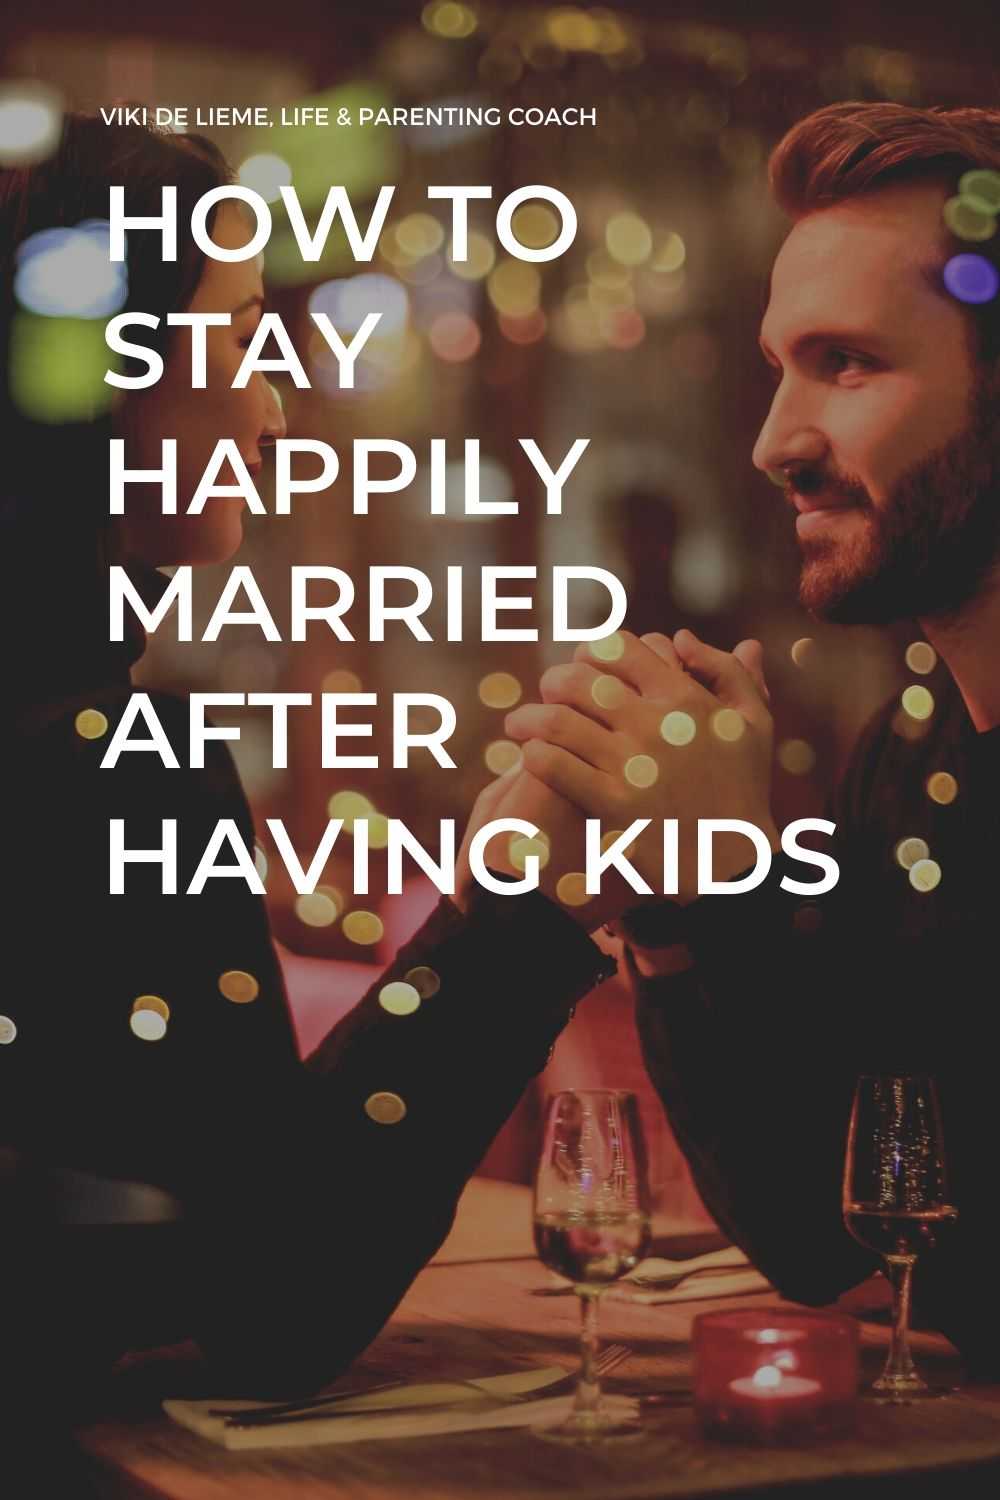 Use these three marriage tips to stay happily married after having children #marriagetips #happyfamily #parenting #peacefulparenting